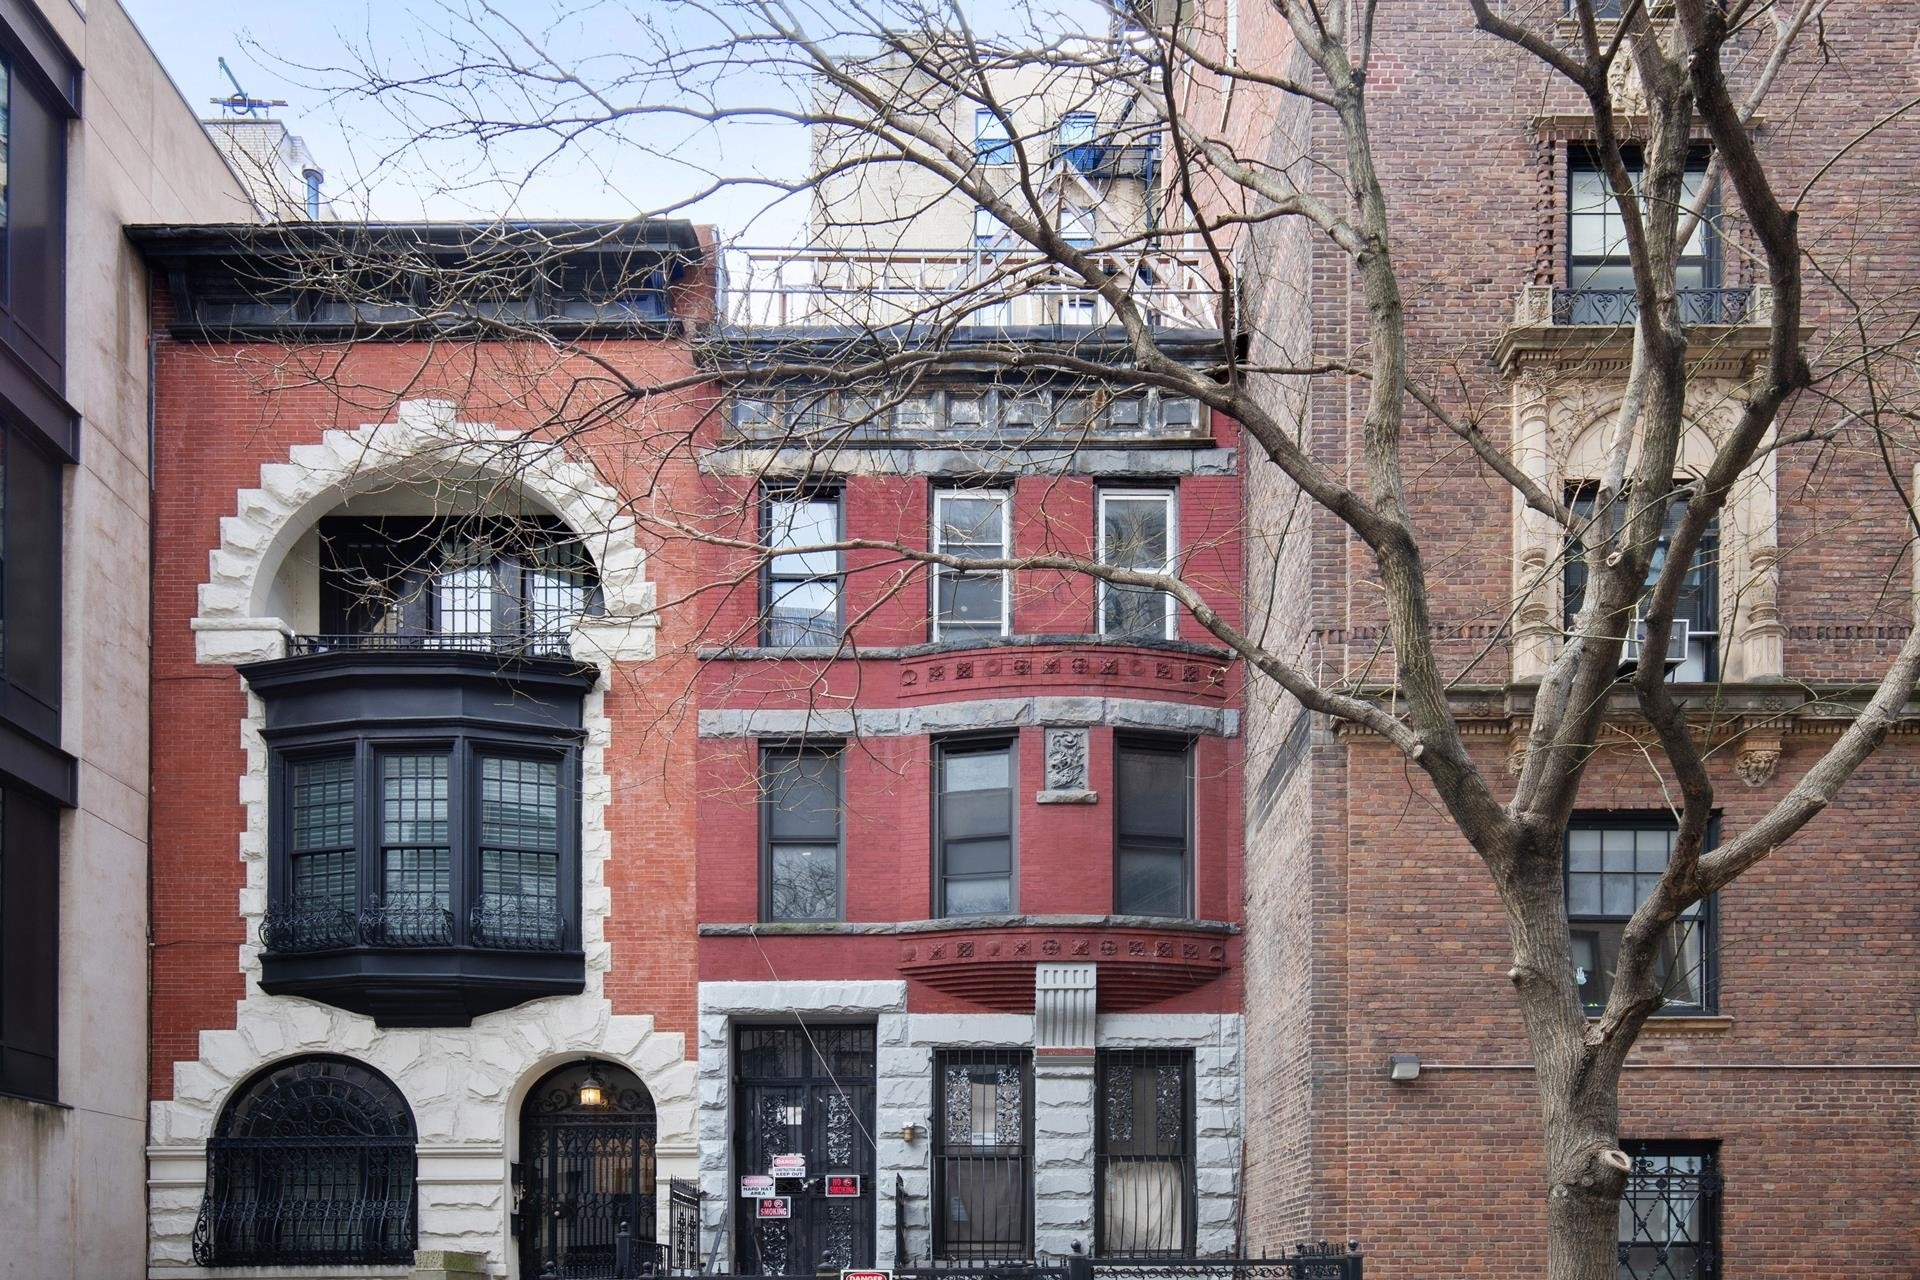 Property à 256 W 75TH ST , TOWNHOUSE Upper West Side, New York, NY 10023